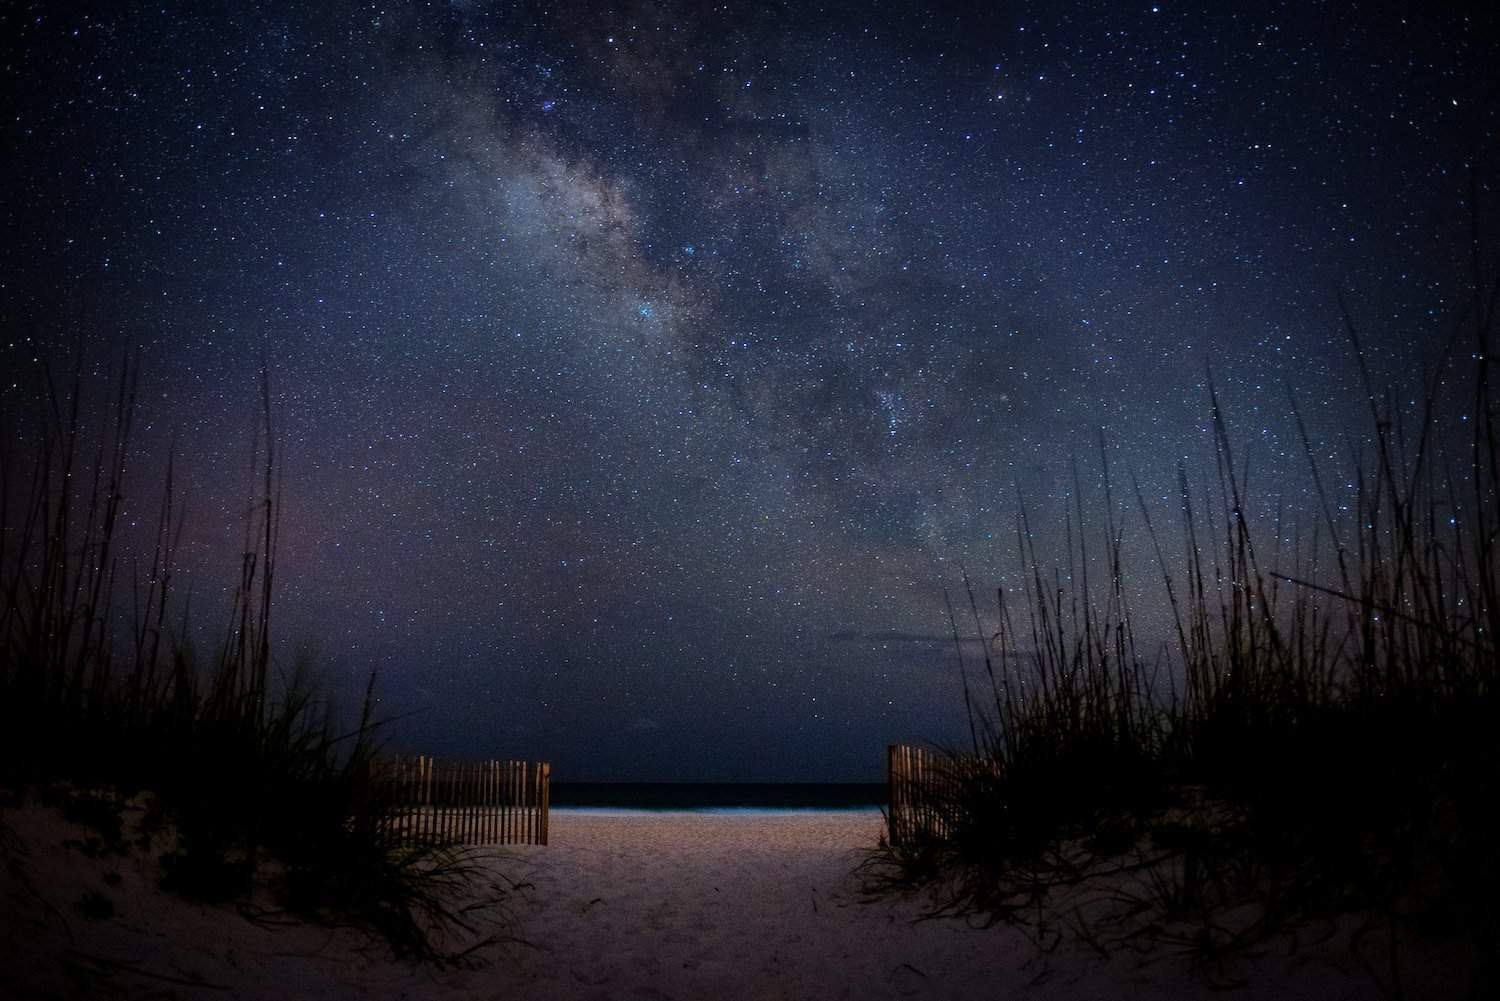 Stargazing in Florida Hero - Matt Deavenport via Flickr